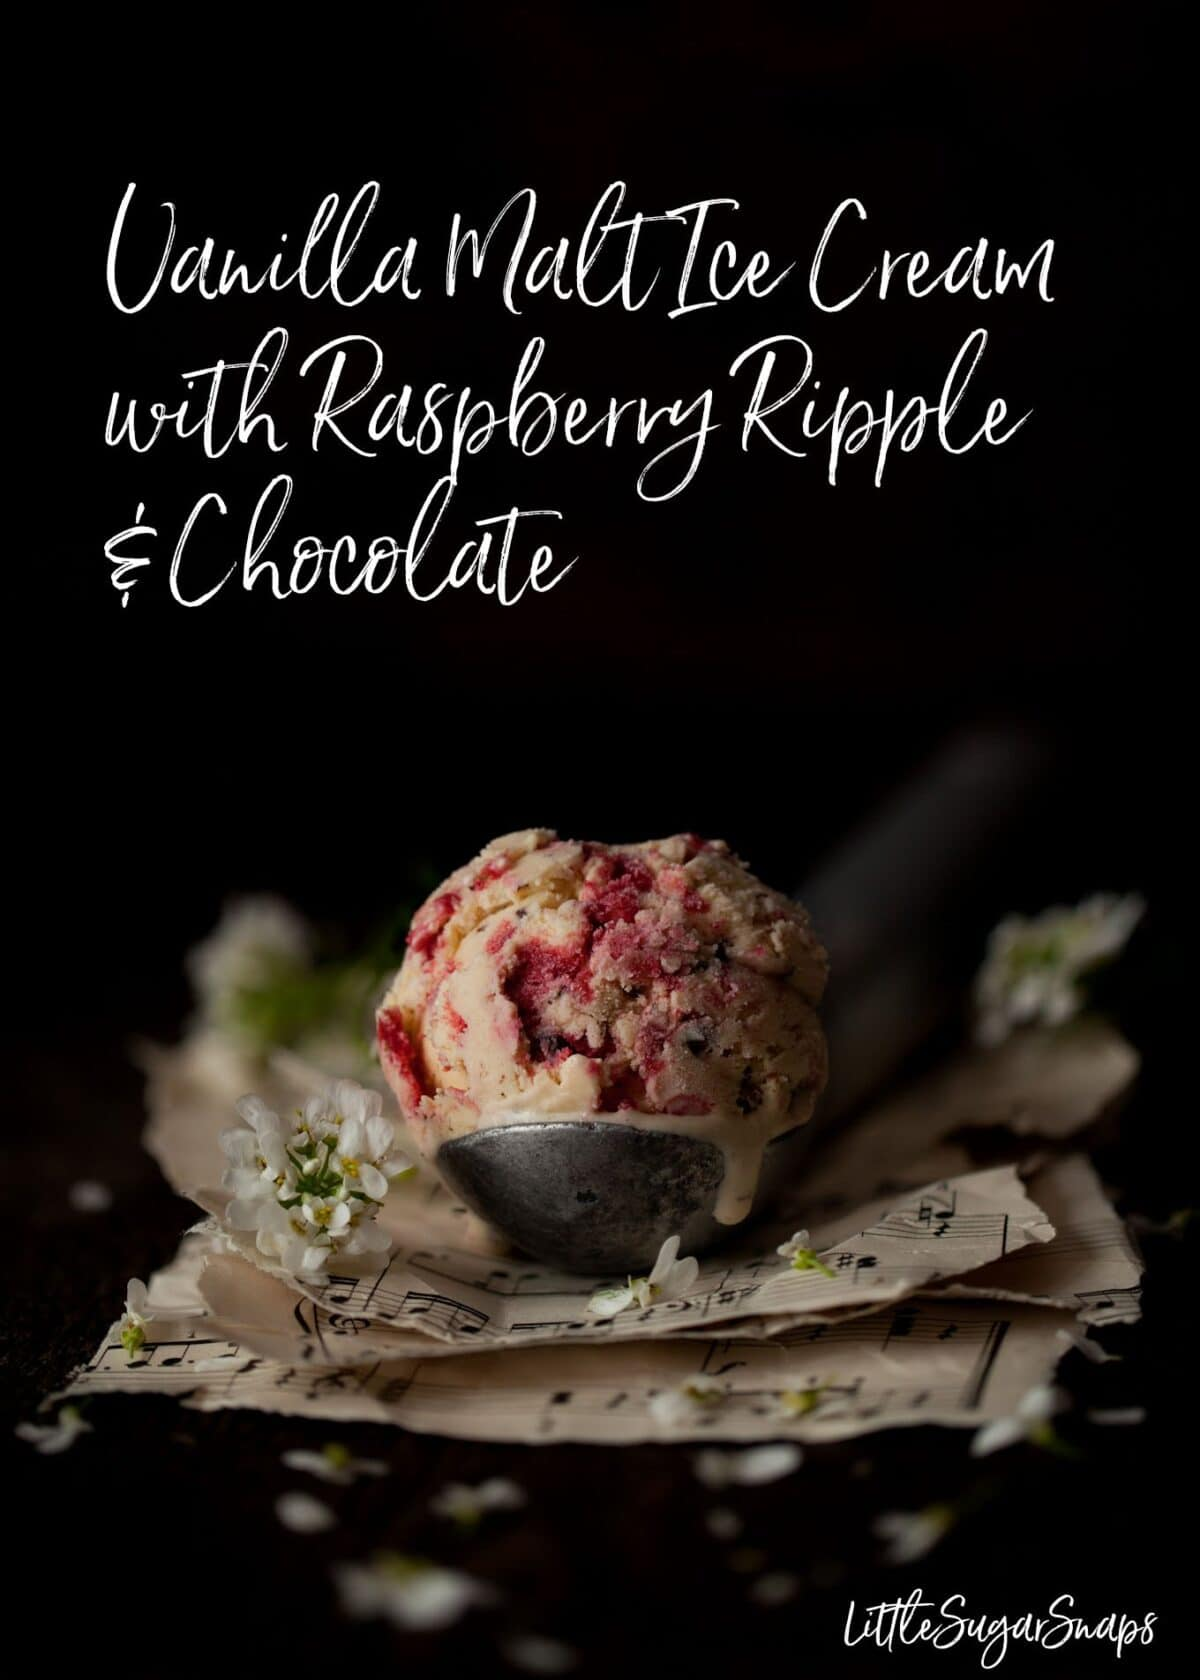 Malted Milk Ice Cream with raspberry ripple and chocolate #malticecream #vanillamalt #maltedmilkicecream #raspberryripple #maltraspberry #maltrecipe #chocchipicecream